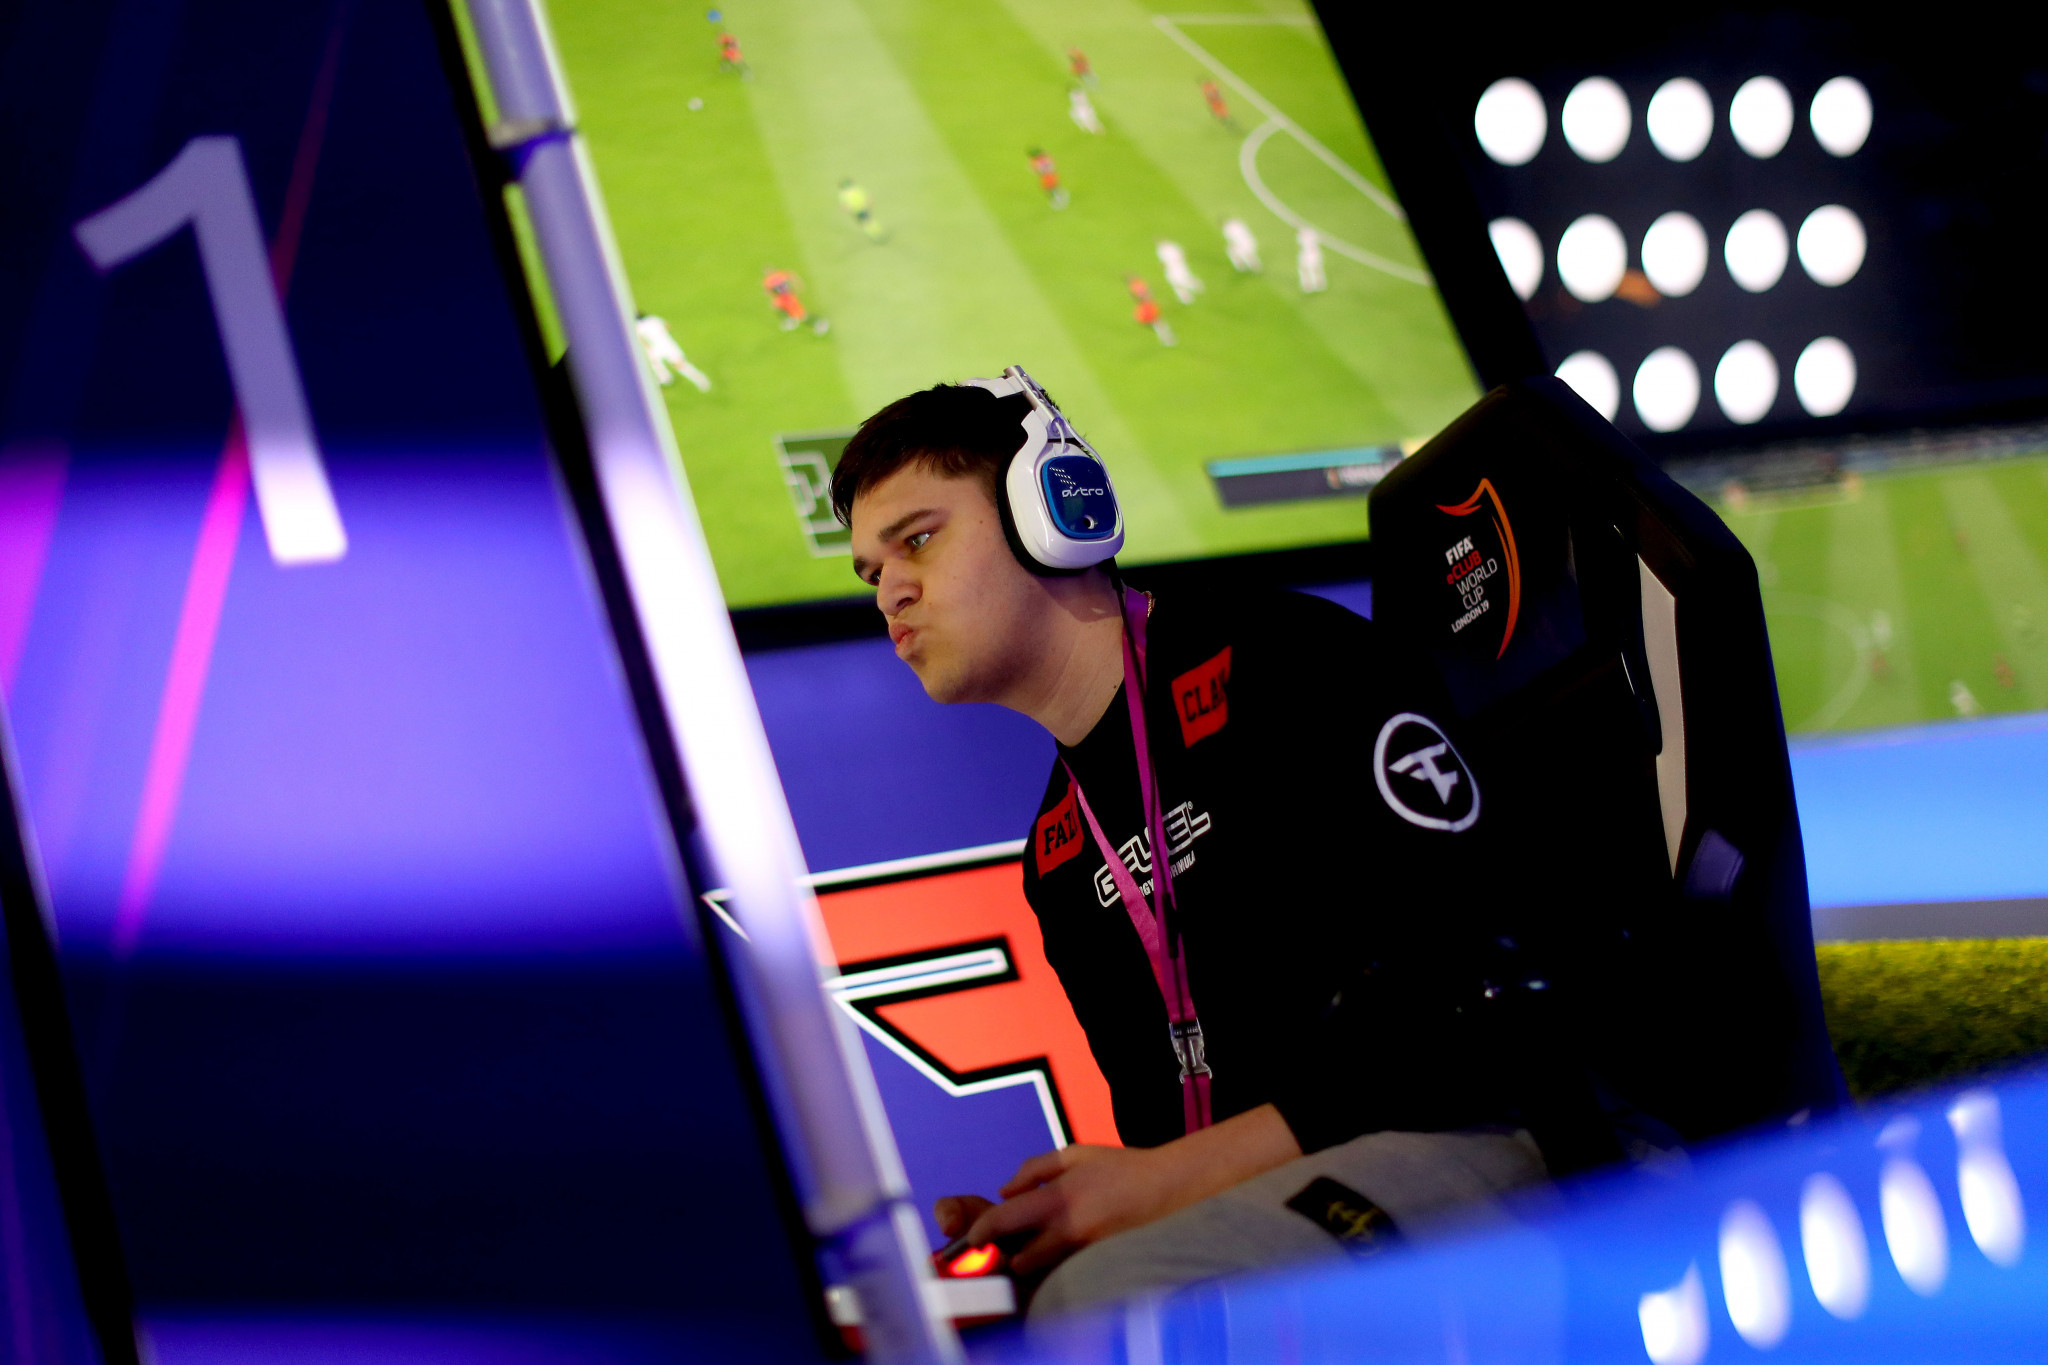 Esports has grown into an even more lucrative business during COVID-19 lockdowns ©Getty Images